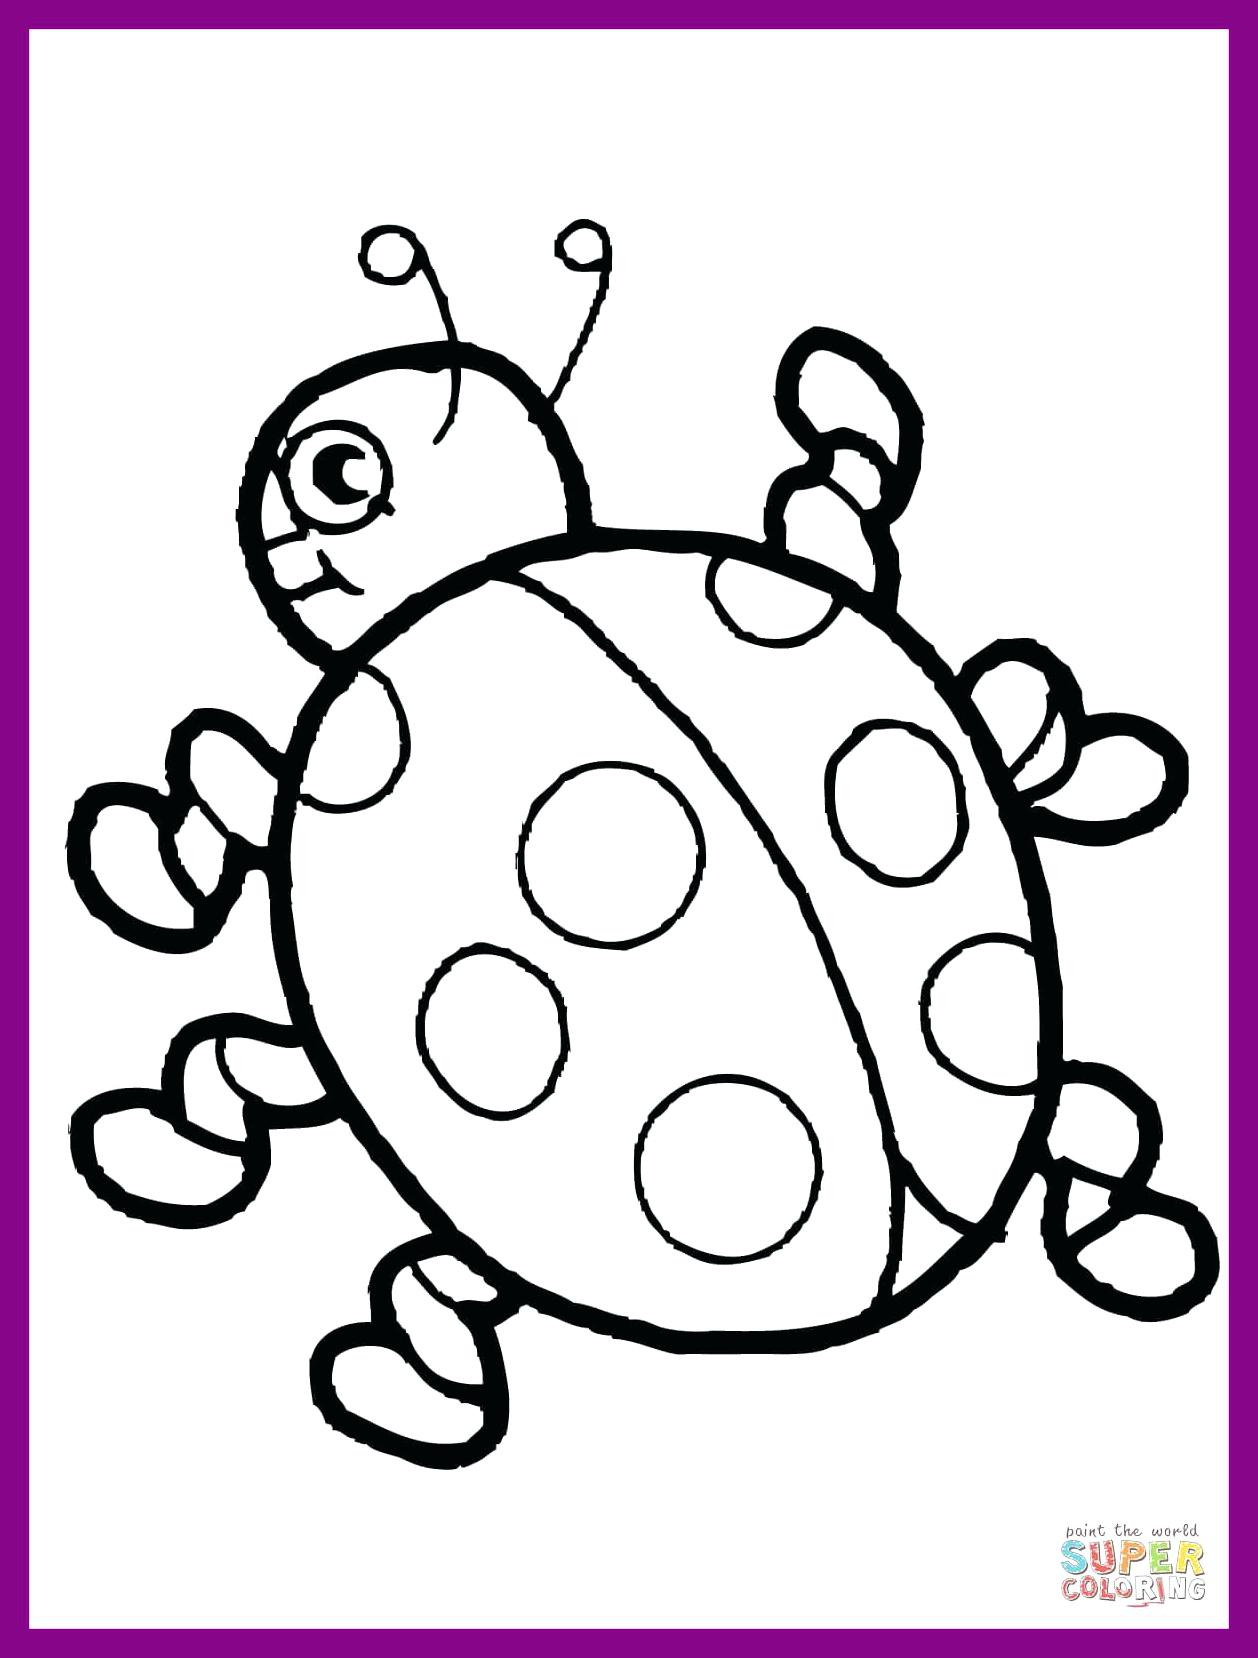 1258x1658 Download Here Pint Here Ladybug Coloring Pages For Preschoolers